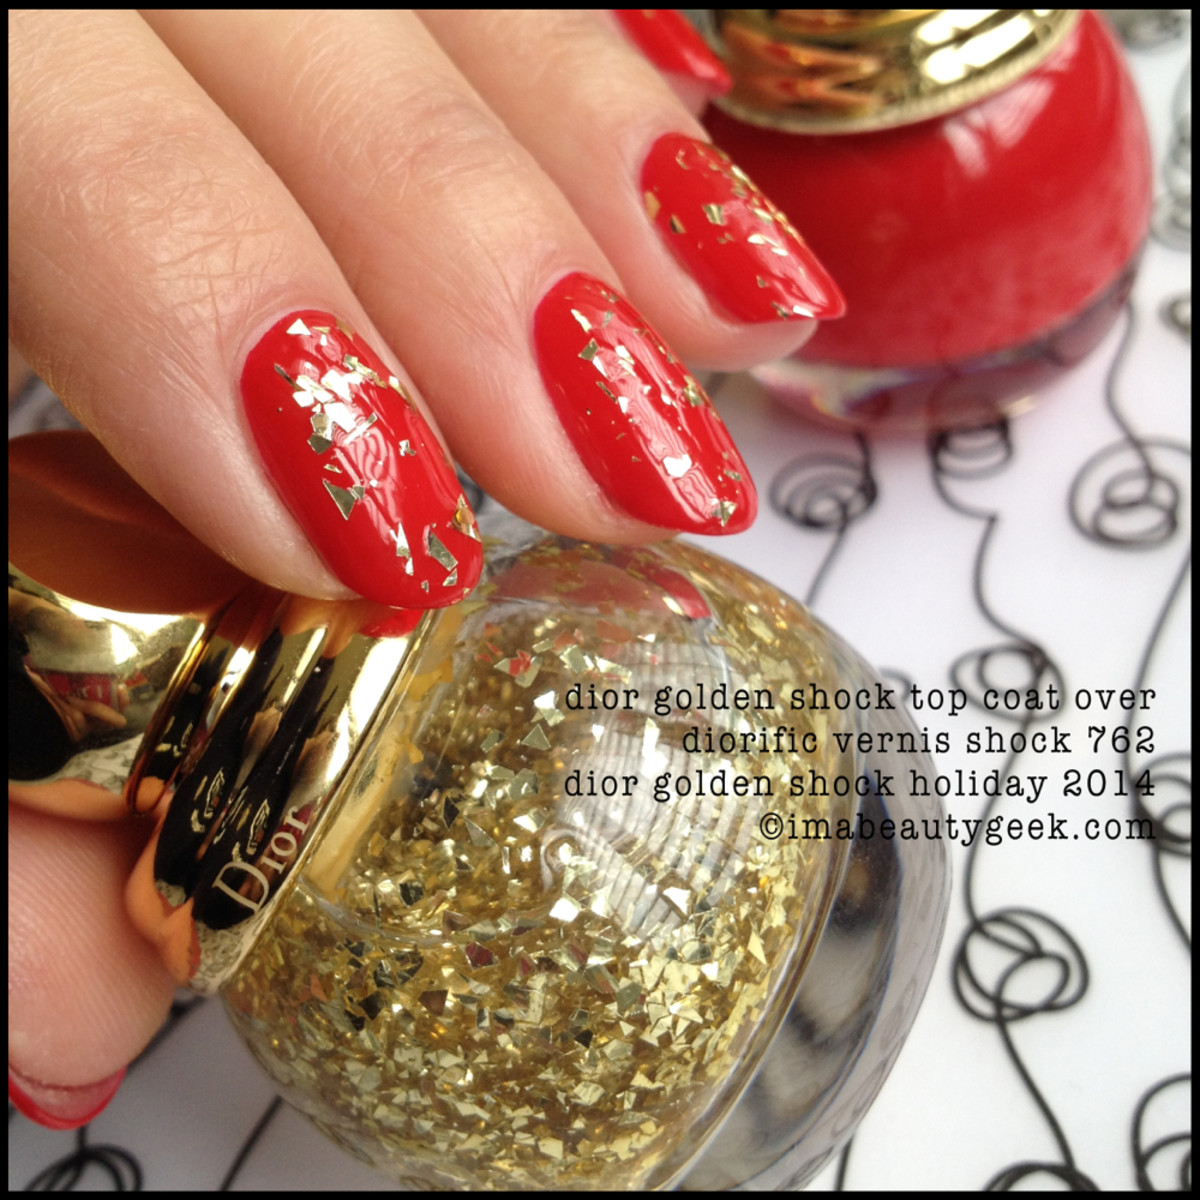 Dior Golden Shock over Diorific Vernis Shock 762 Holiday 2014